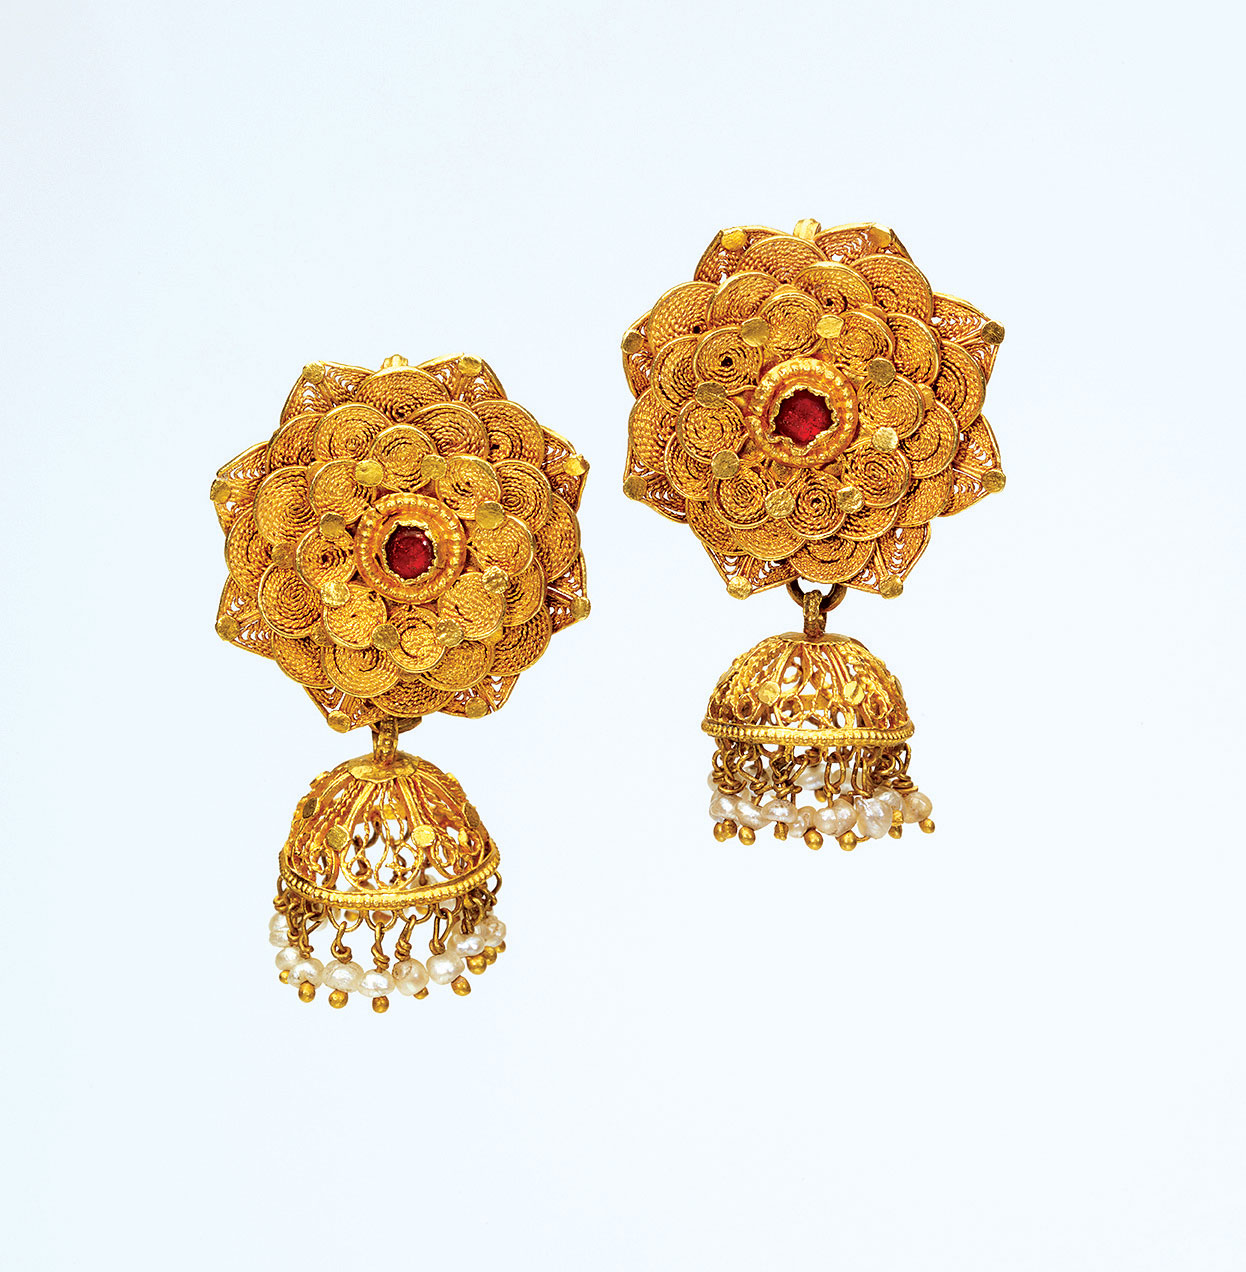 EARRINGS  (karanphul jhikka)  of gold, rubies, pearls, 2.5 × 3.6 centimeters, Orissa, late nineteenth century.